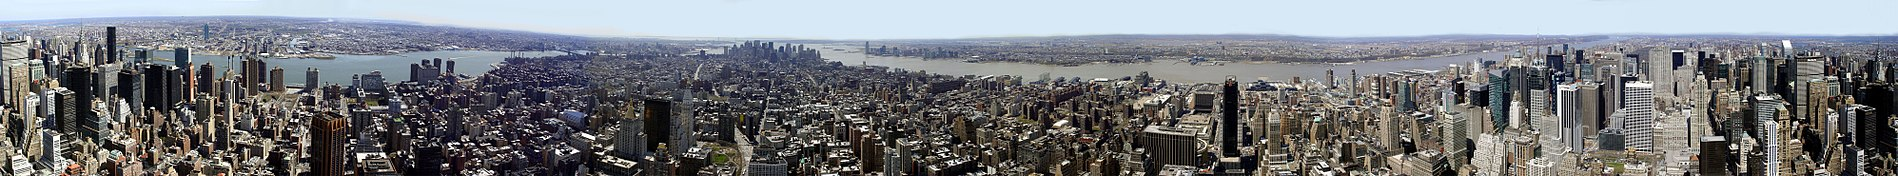 Panoramic view of Manhattan island from the Empire State Building.